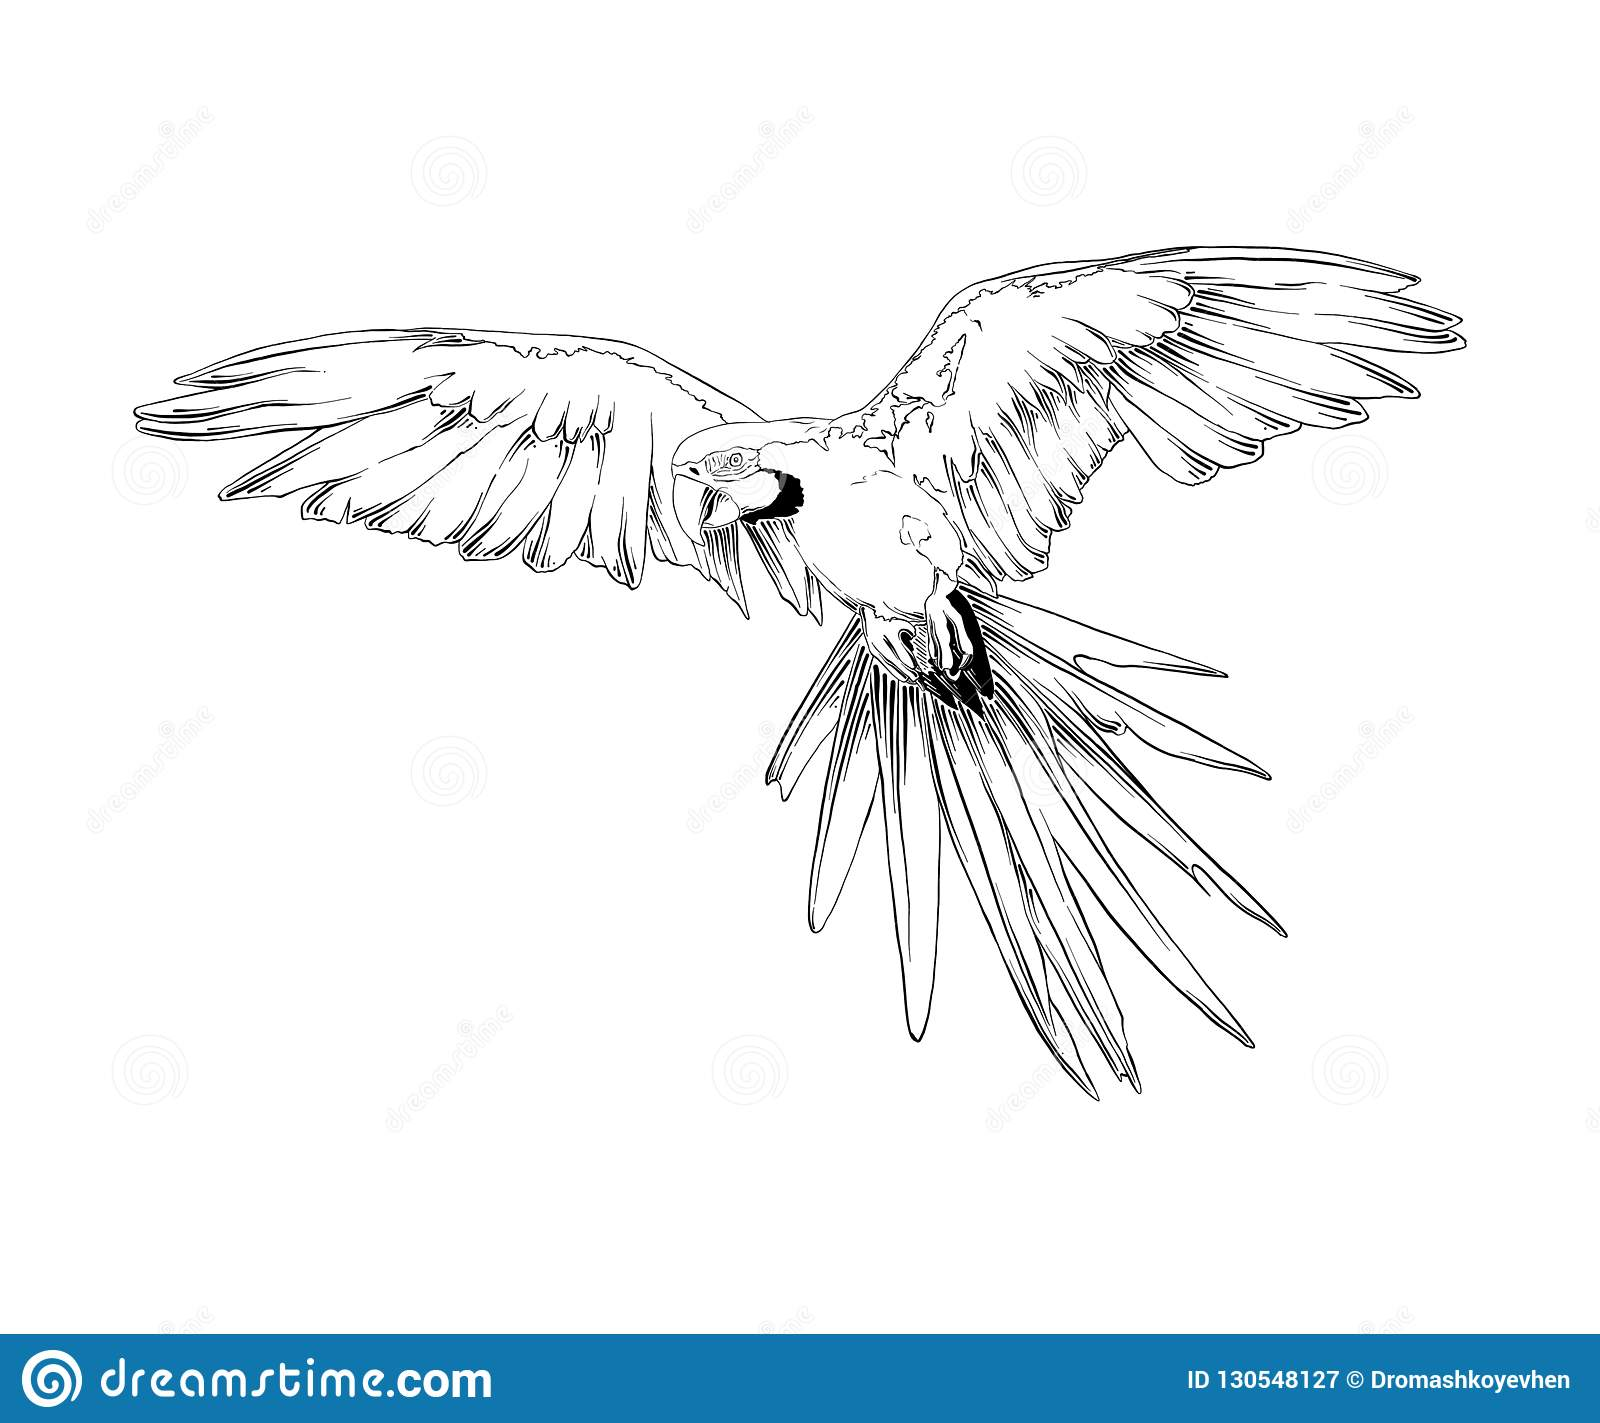 Hand drawn sketch of brazilian parrot bird in black isolated on white background. Detailed vintage etching style drawing.